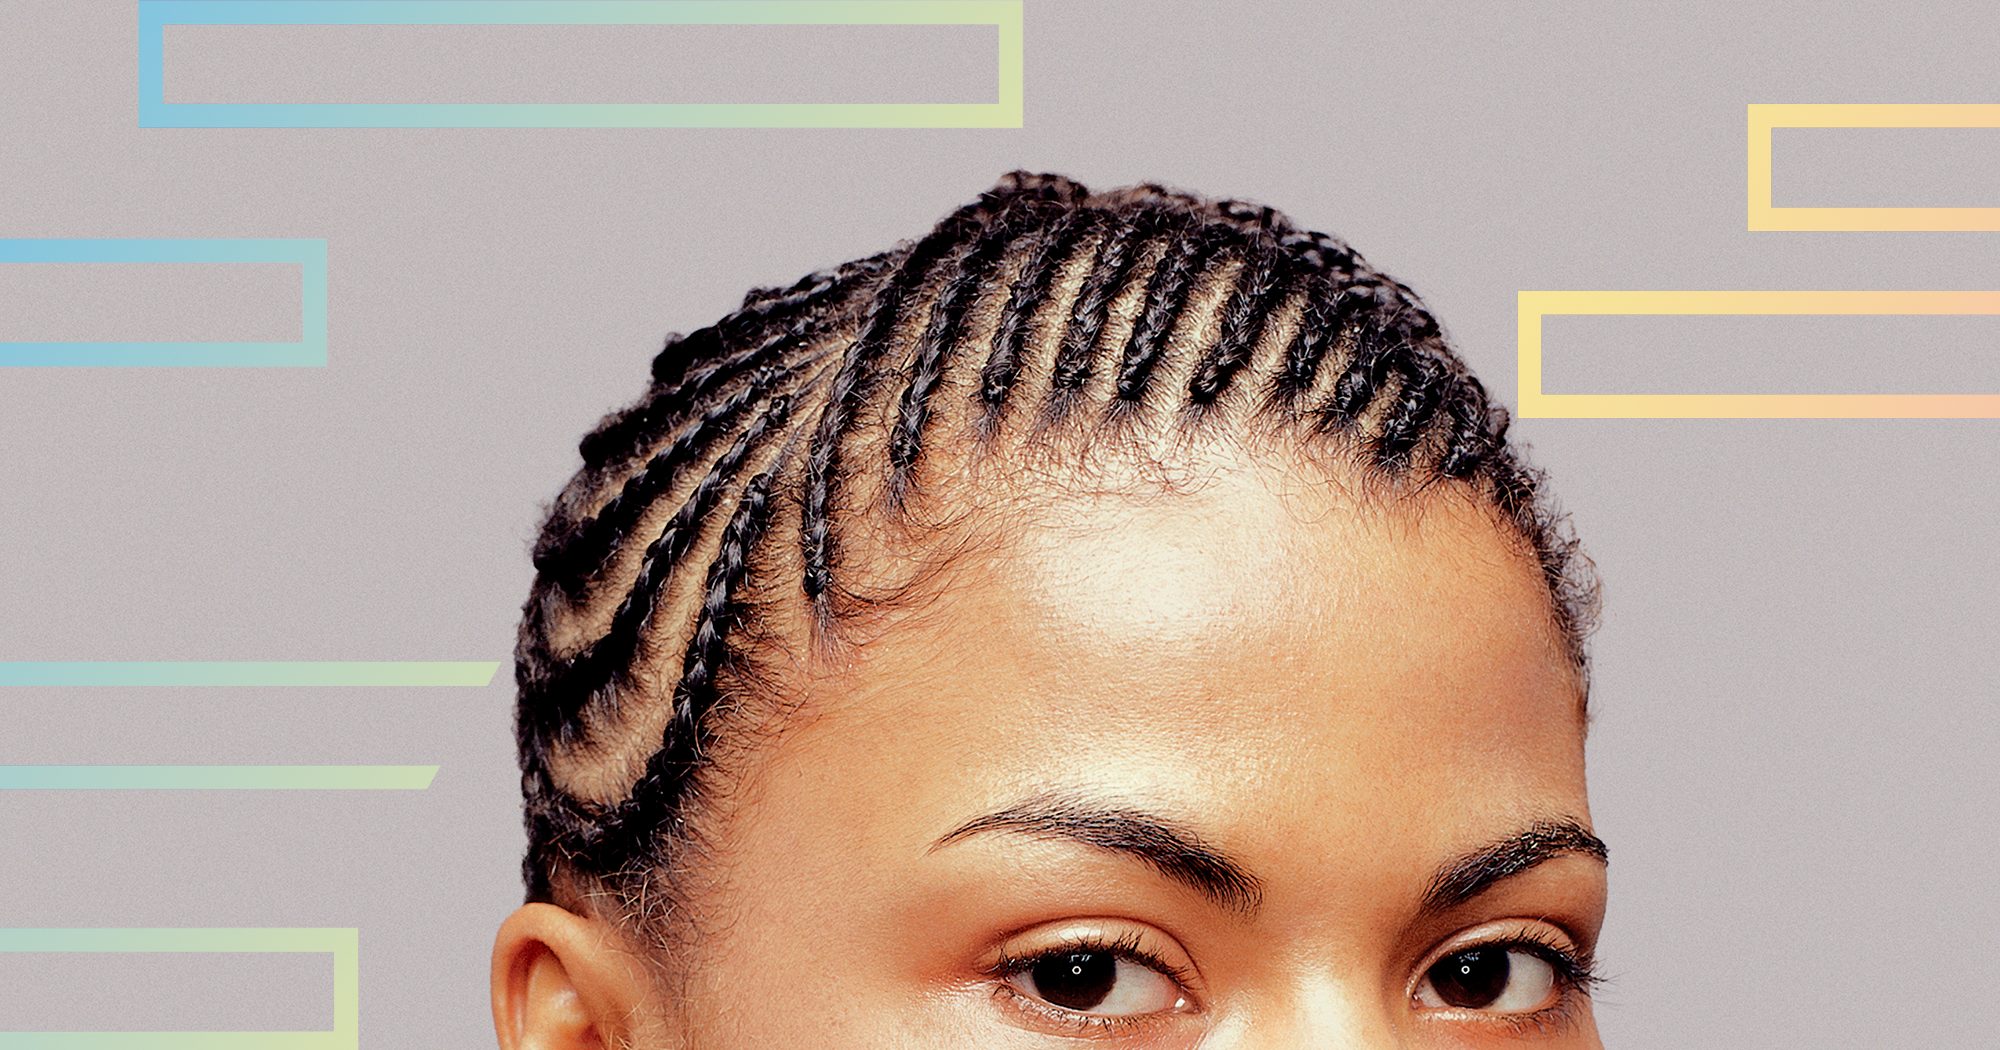 Hairstyles No Braids: Braids Hairstyles Differences